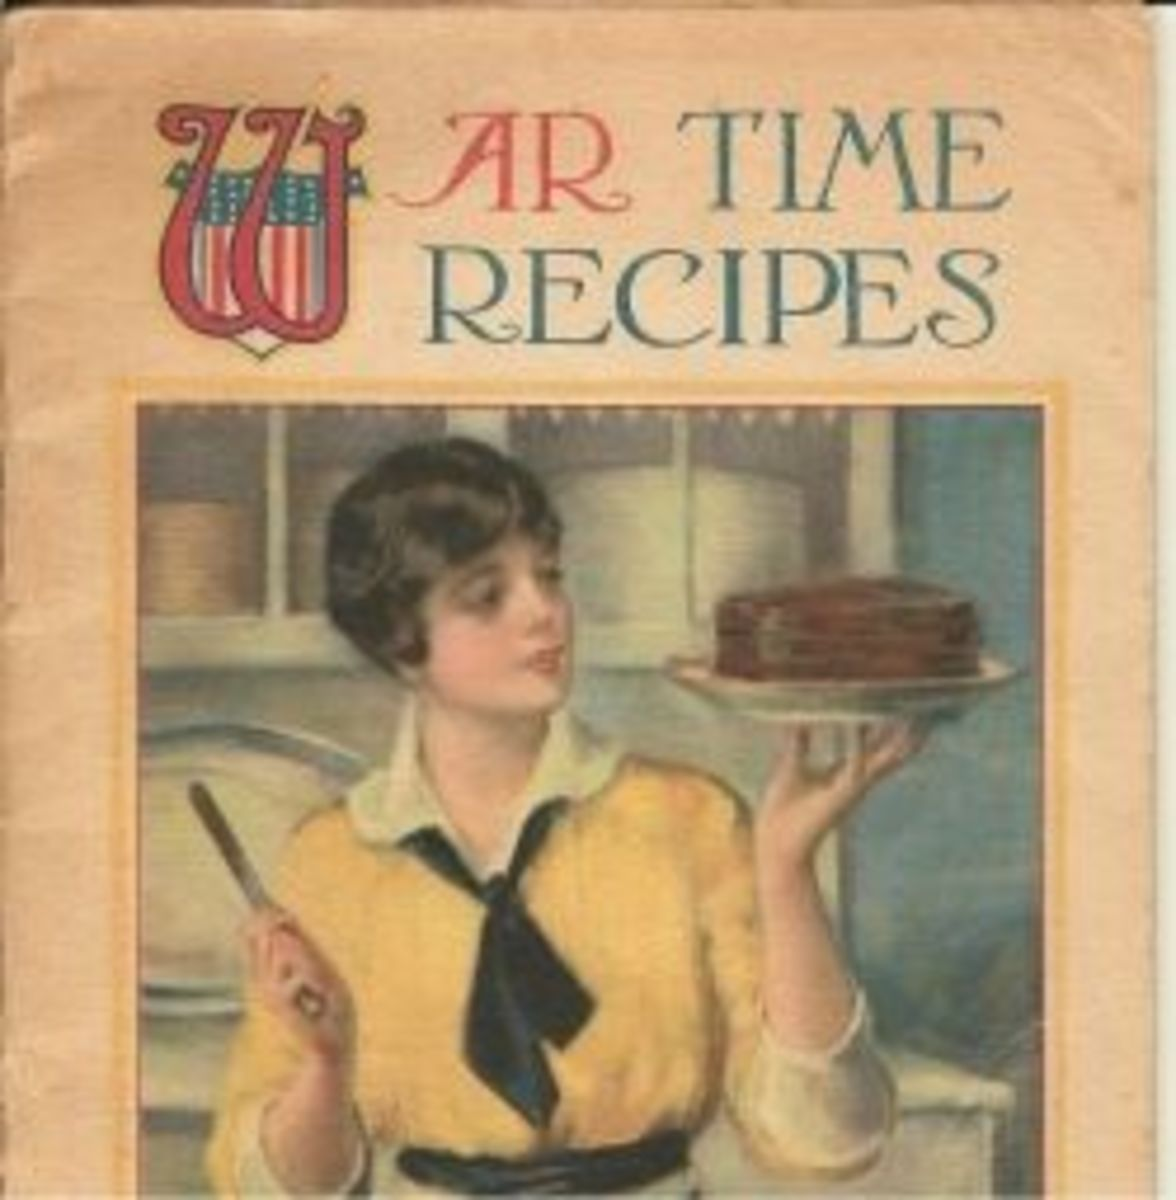 Wheat Free Baking from WWI